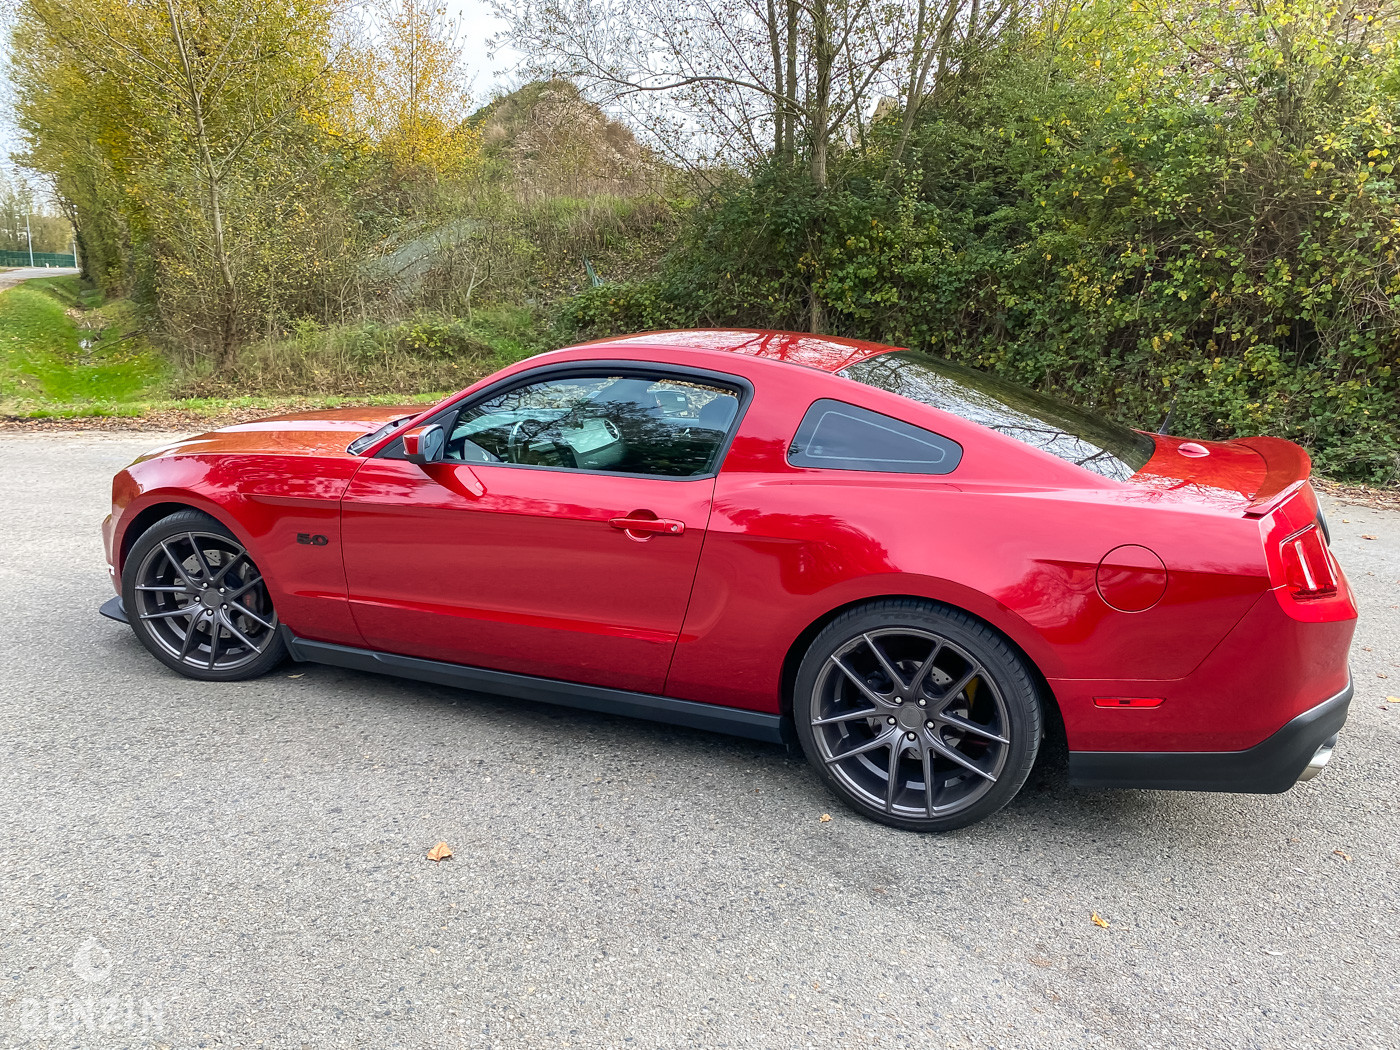 Ford Mustang GT occasion à vendre